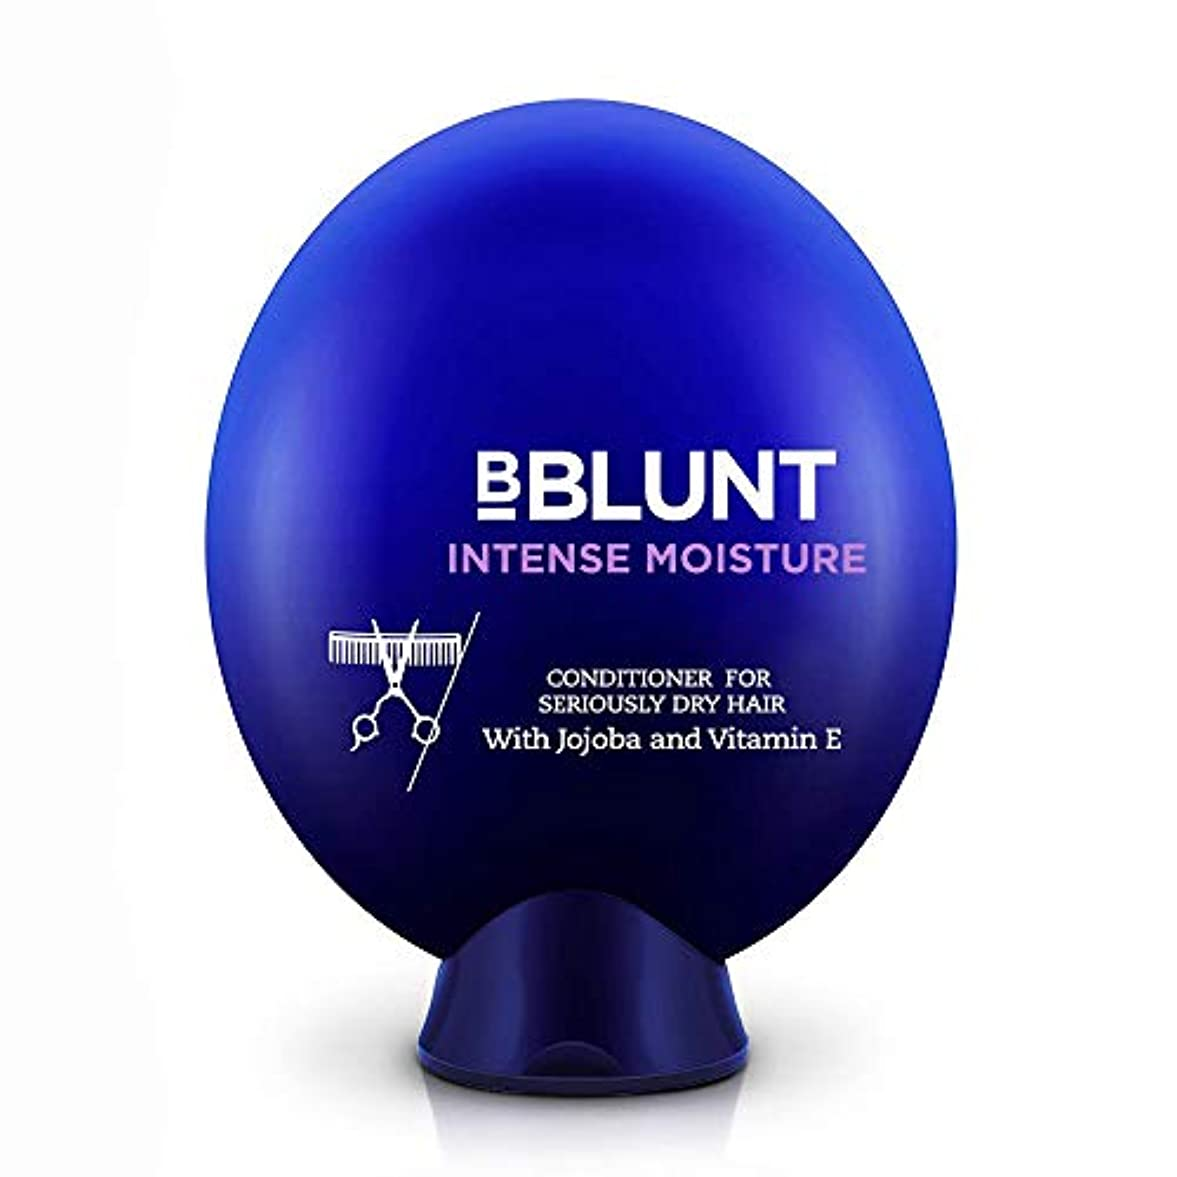 生命体表面別れるBblunt Intense Moisture Conditioner, 200g (Jojoba, Vitamin E, Hydrolyzed Keratin & Wheat Germ Oil)